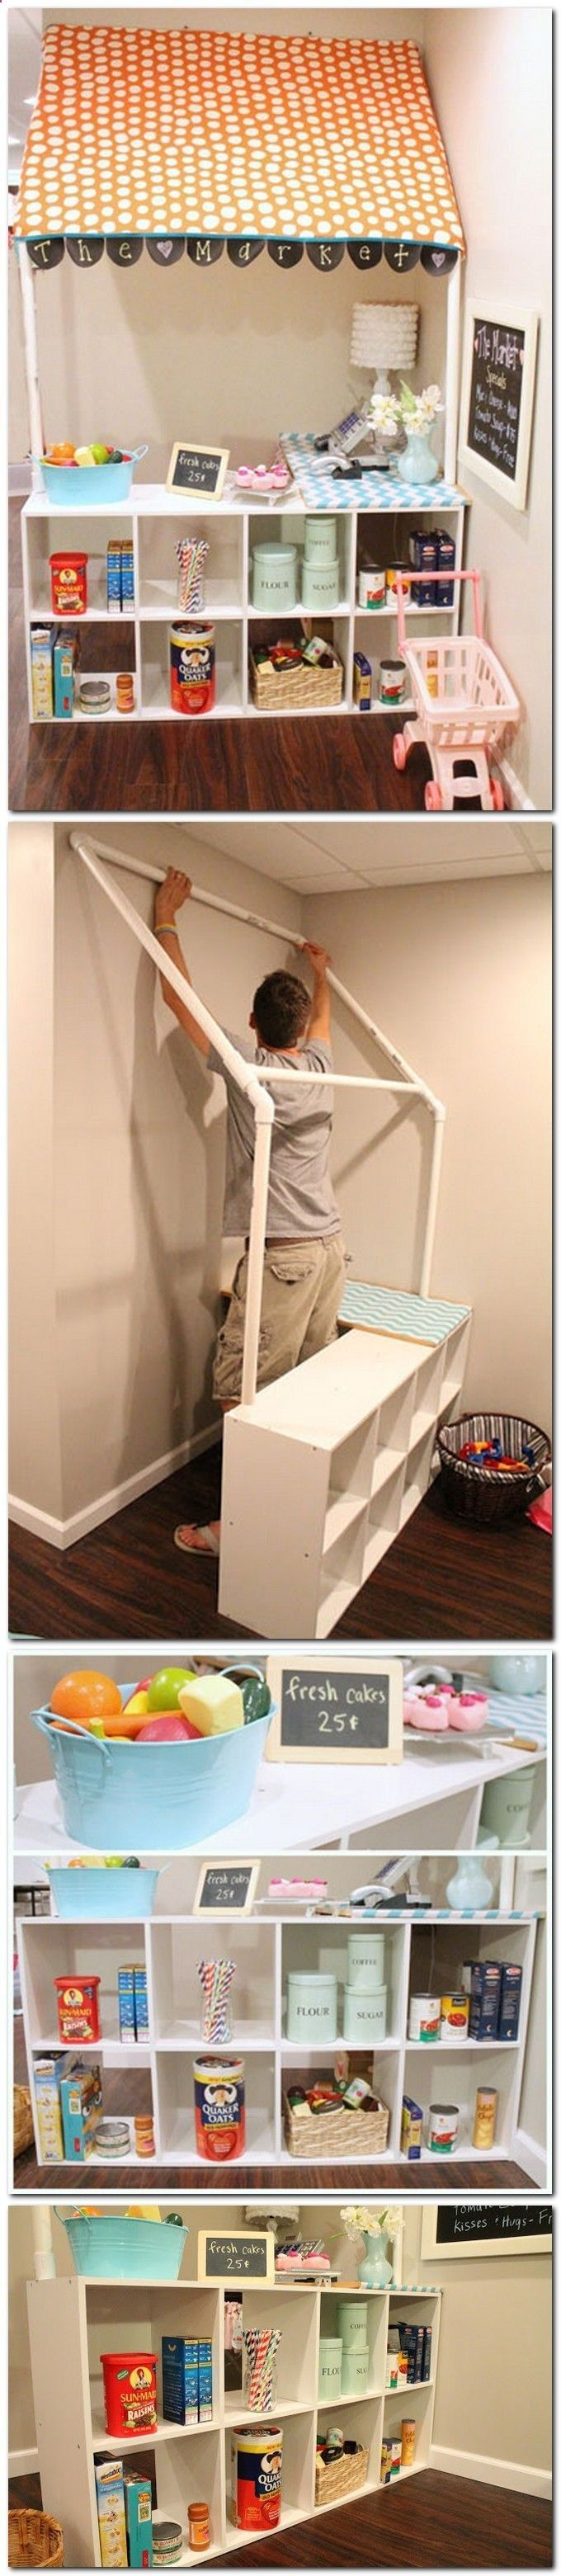 DIY children's grocery store–such a fun idea for a basement or playroom « Kiddos at Home. OR just a playhouse!